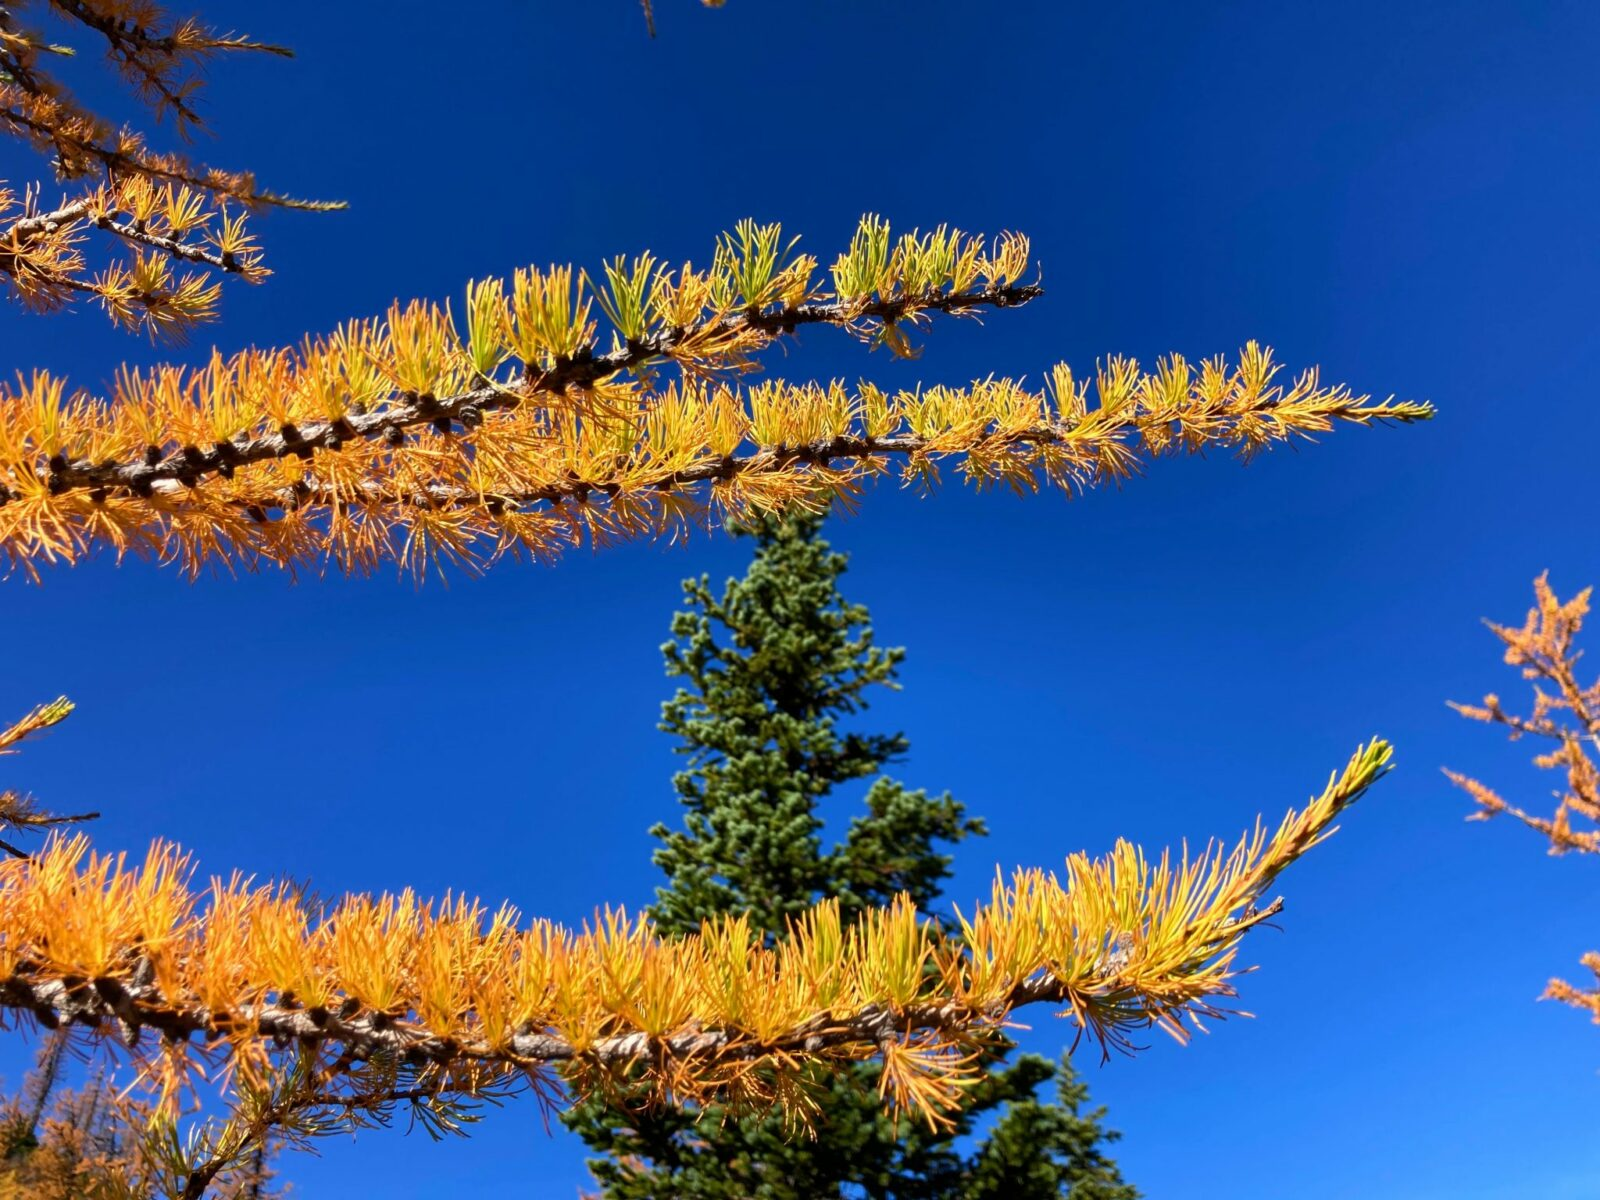 close up golden larch needles against an evergreen tree and a blue sky